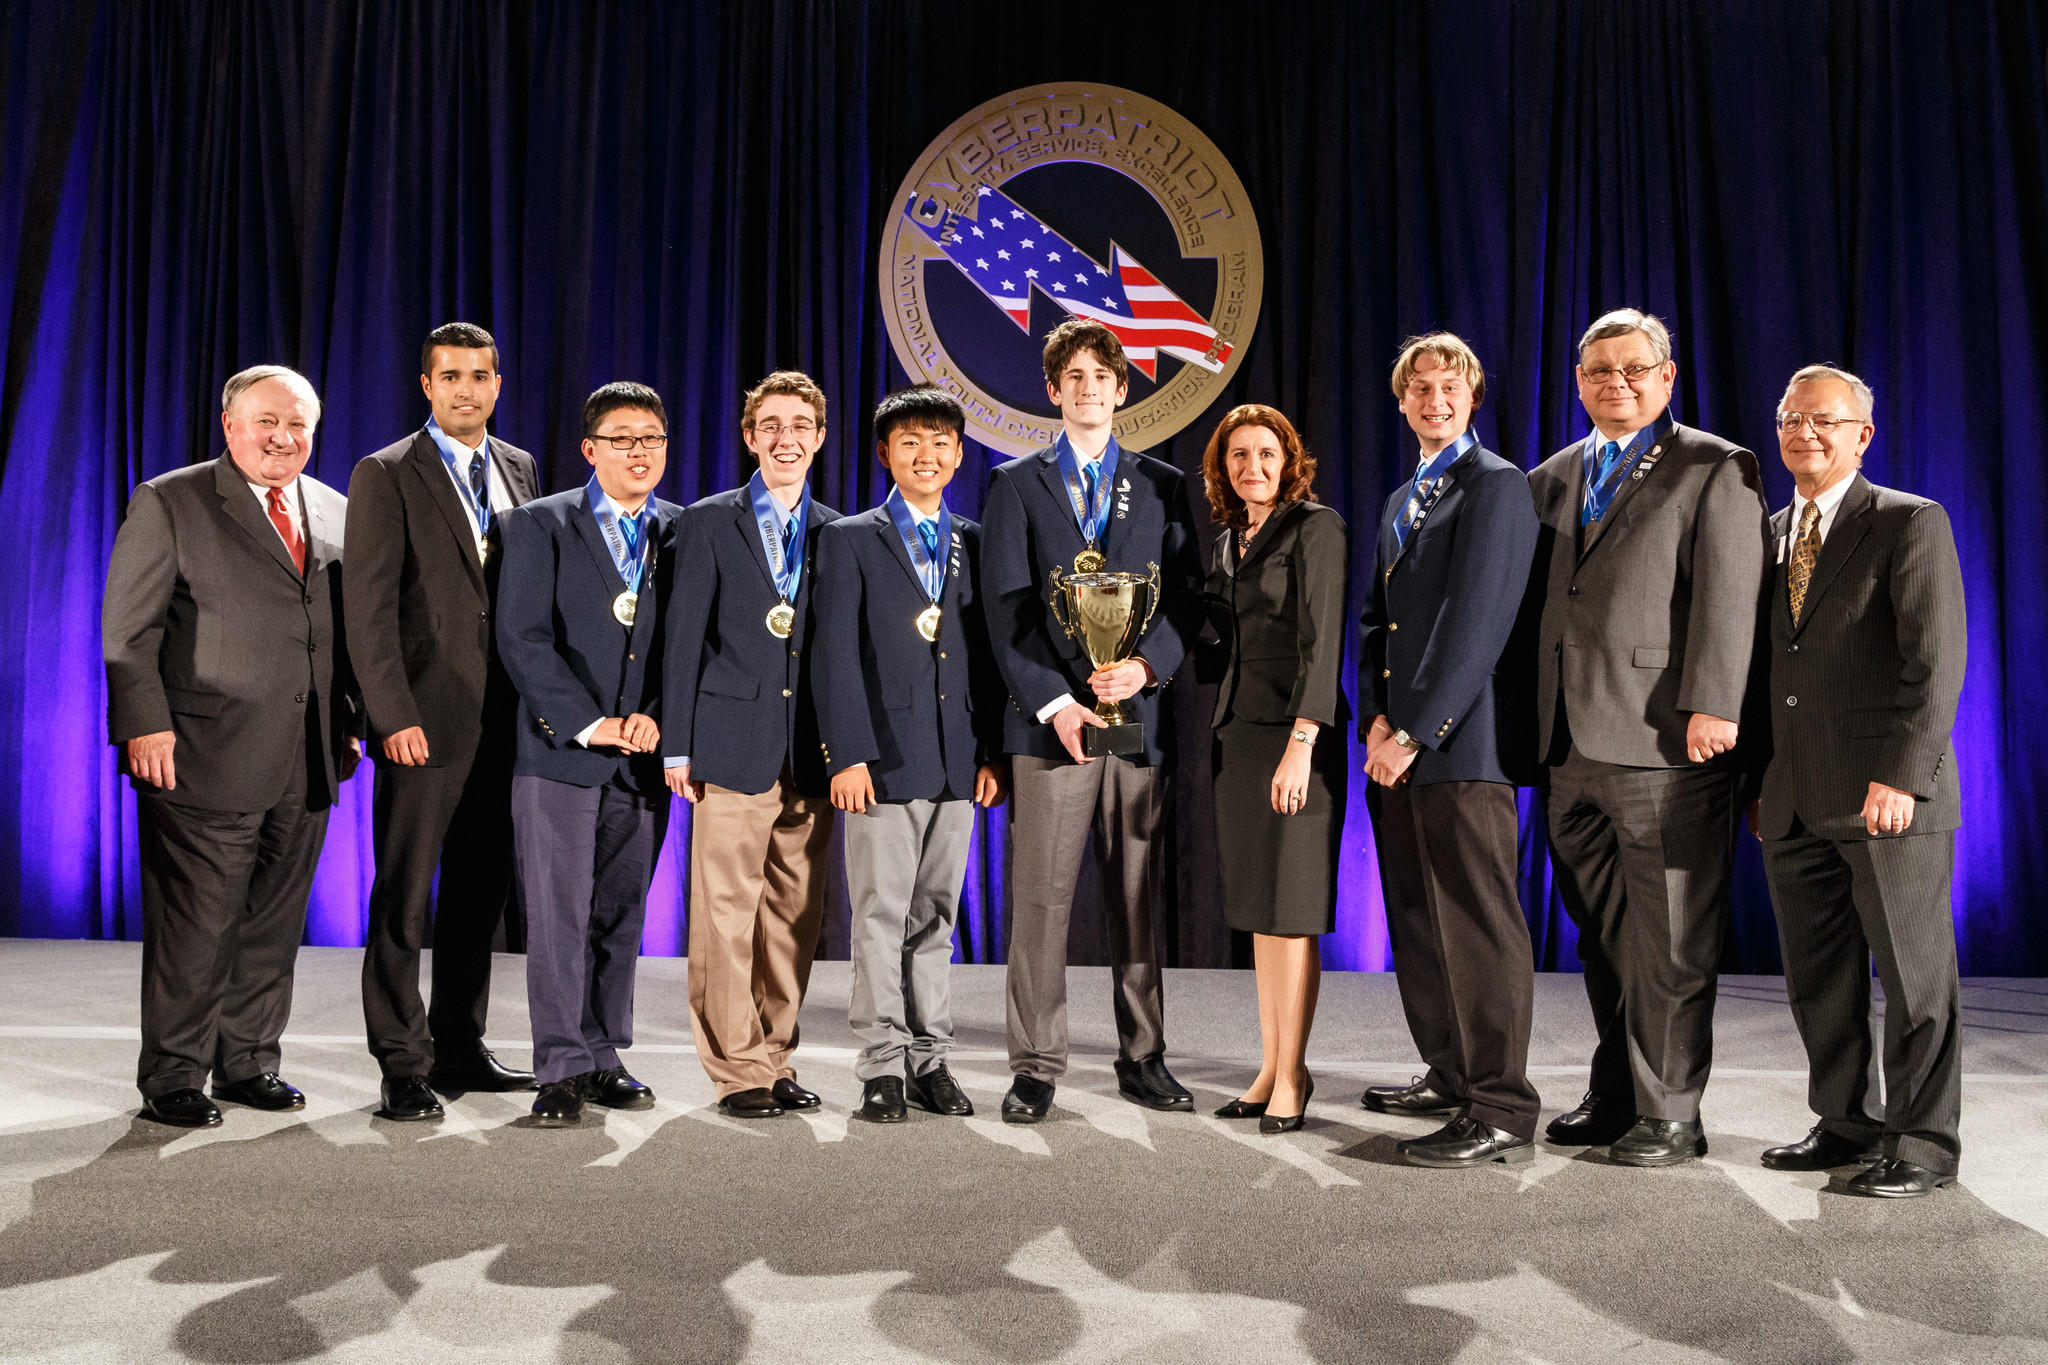 Members from North Hollywood High's Team Azure pose moments after winning the Open Division national championship at the CyberPatriot VI competition in National Harbor, Md.